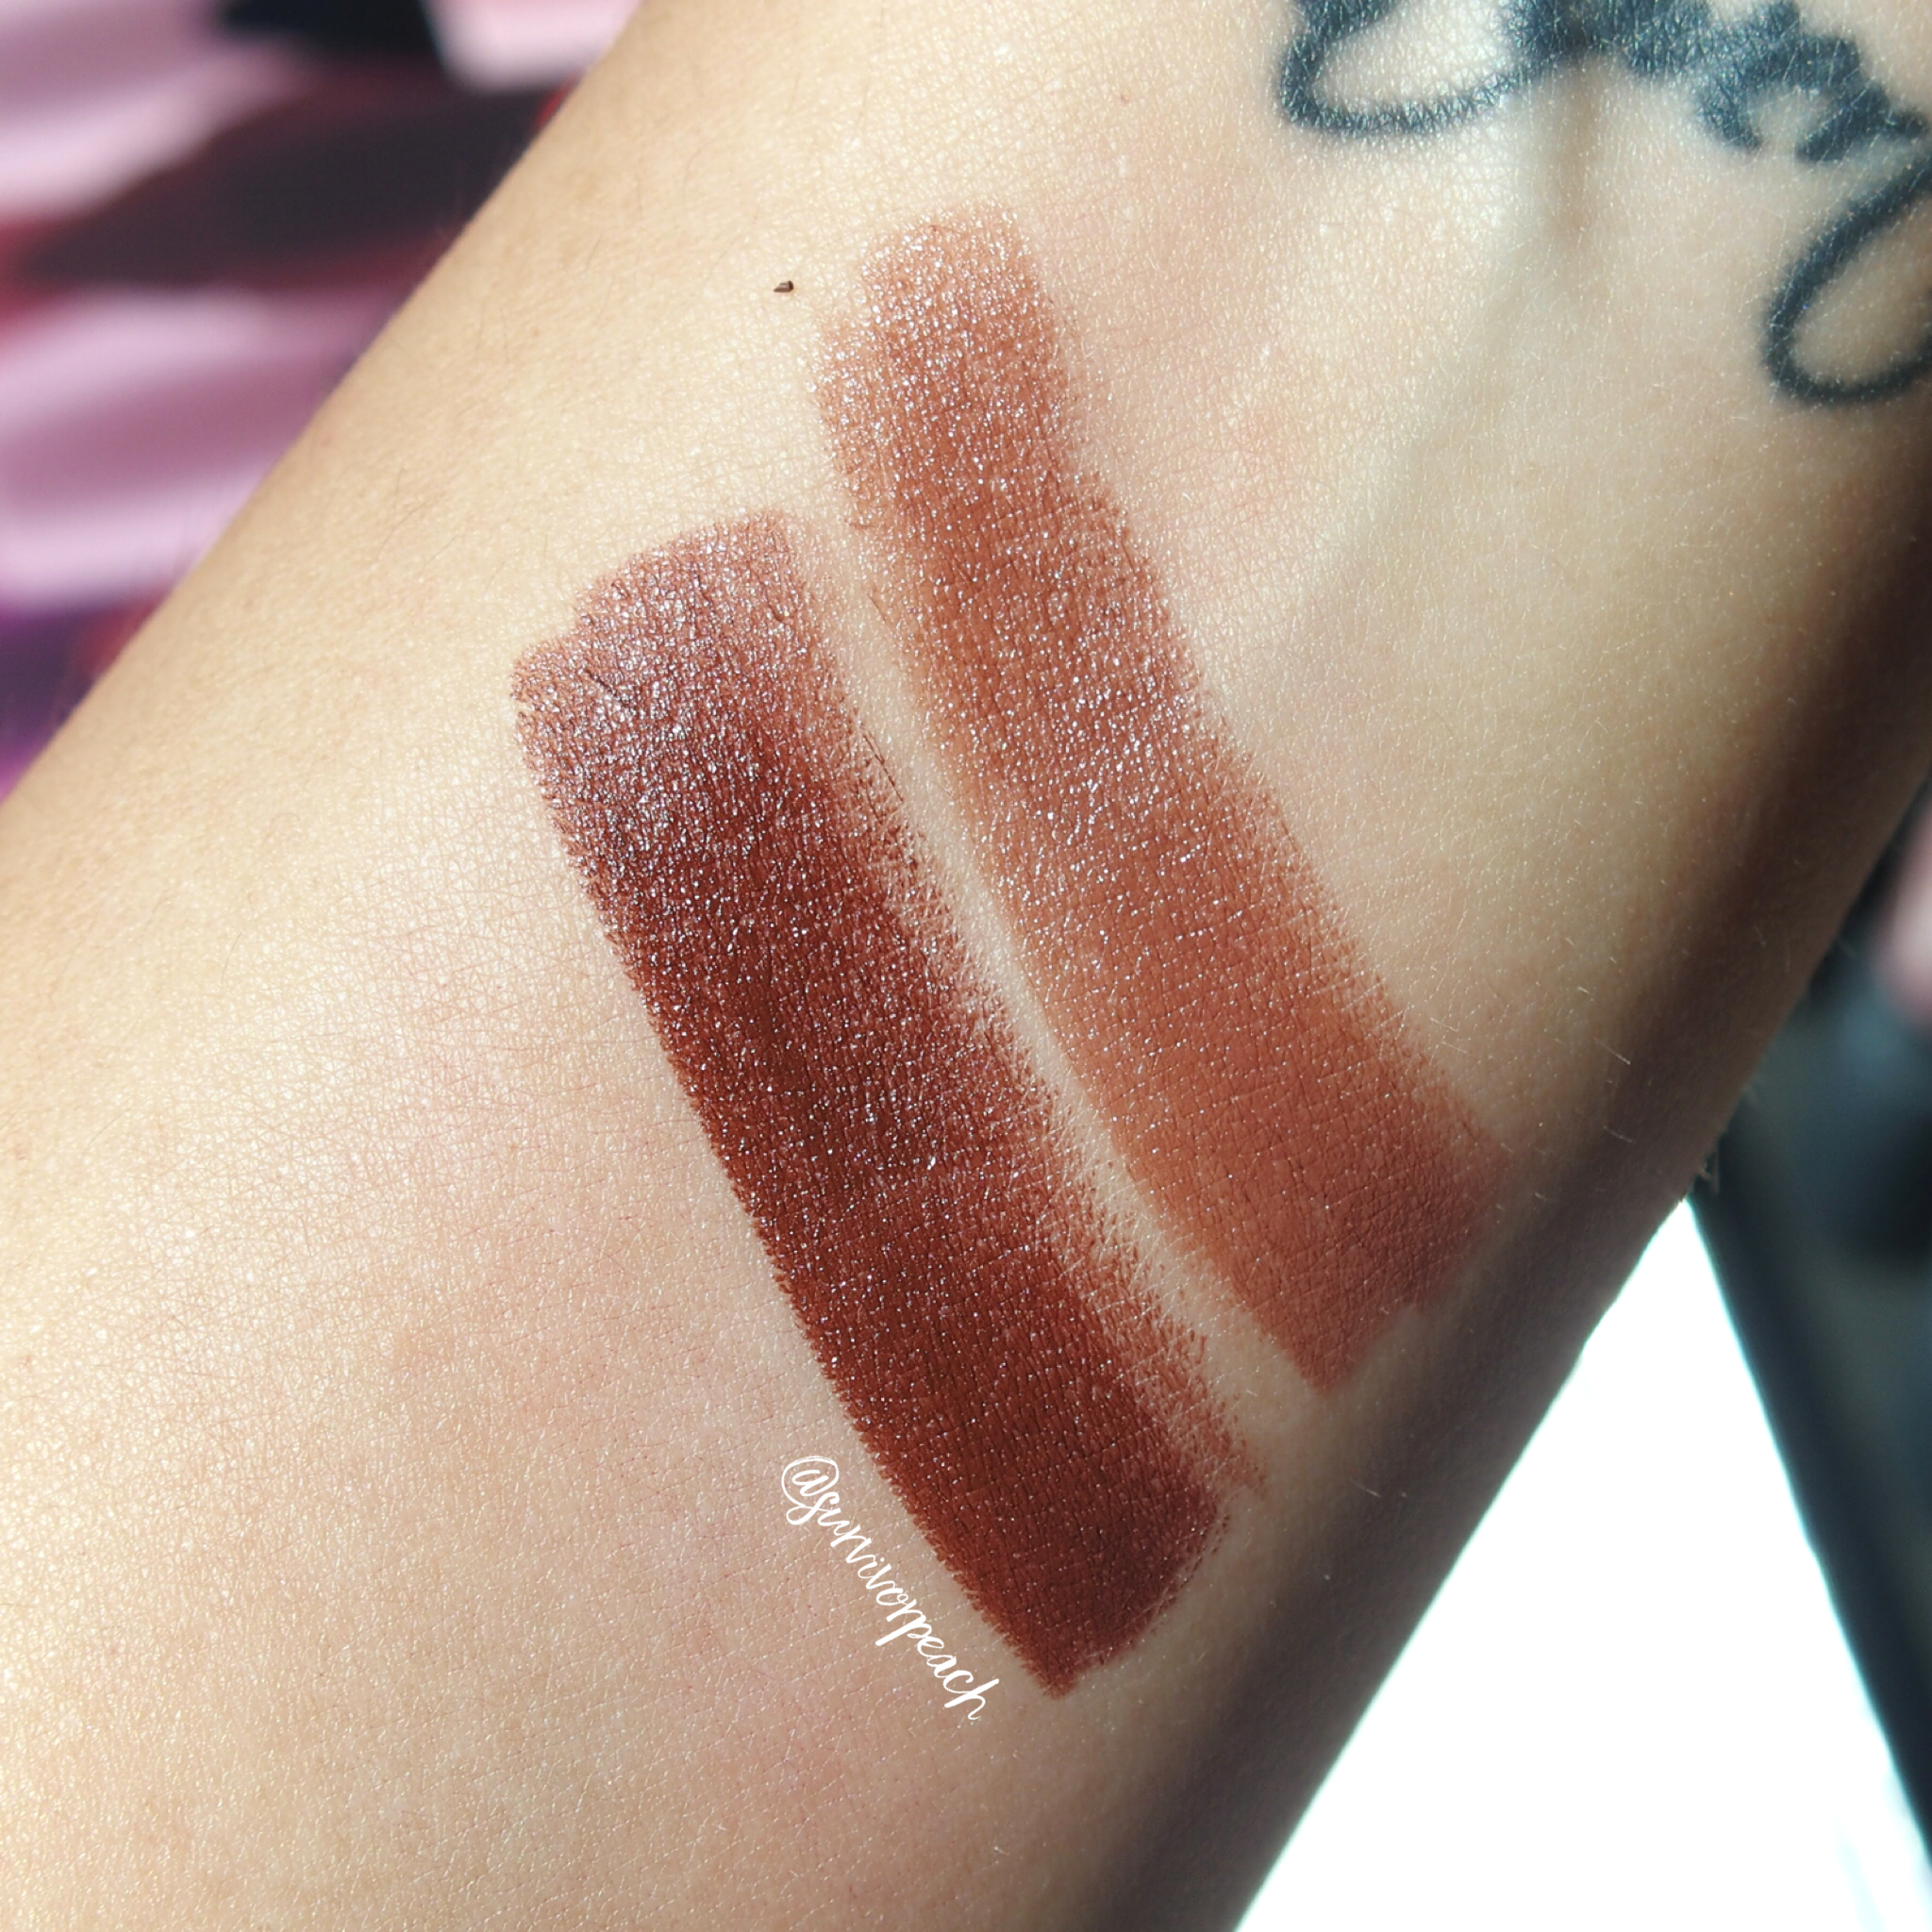 Swatches of the Bite Beauty Matte Creme Lip Crayon in shades Molasses, Cognac